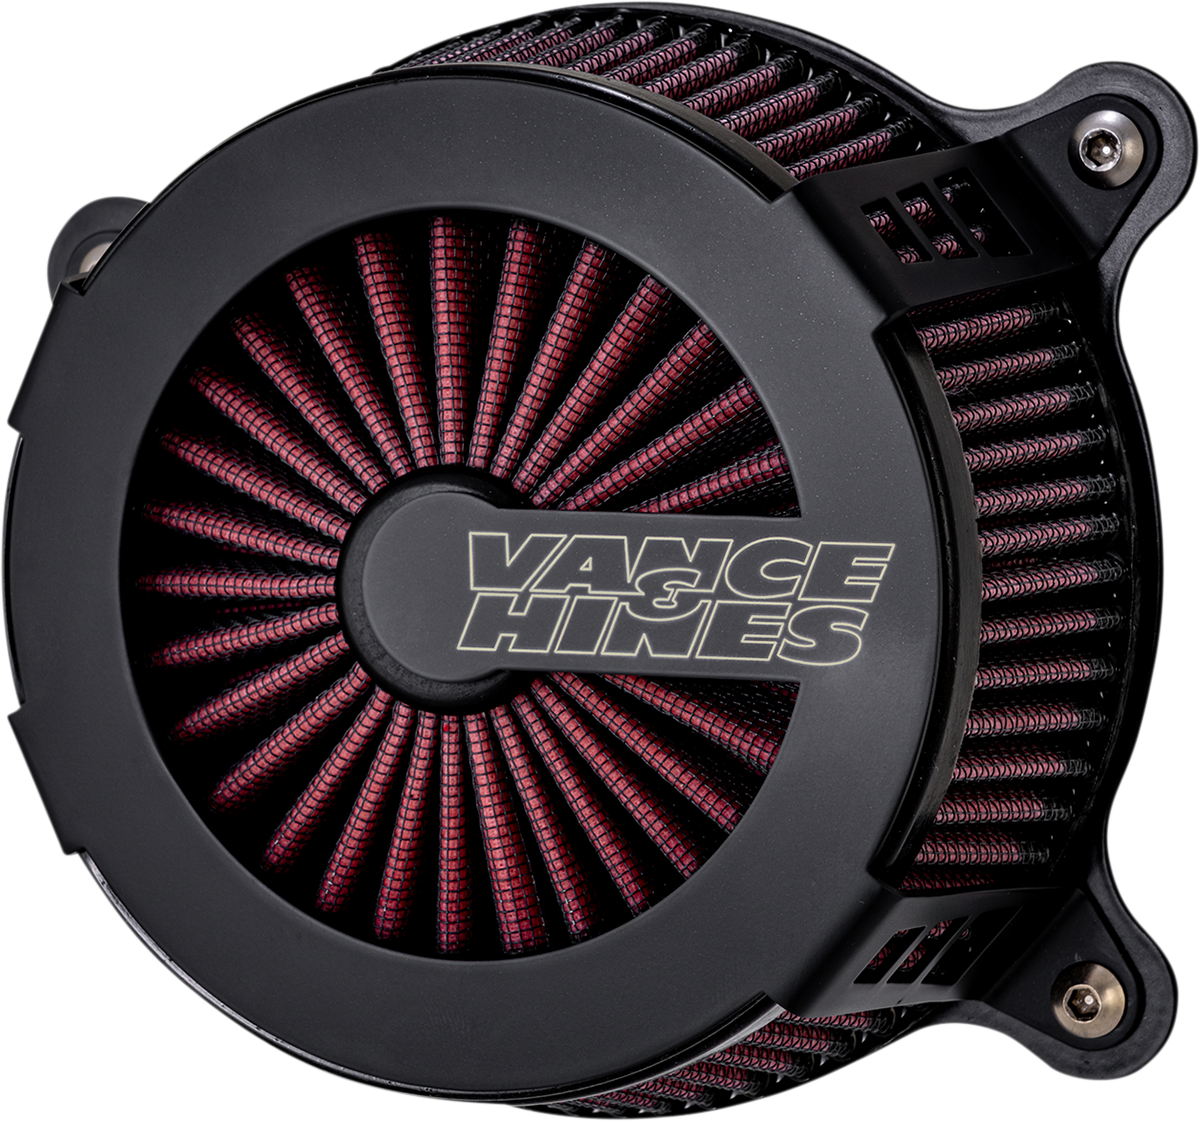 Vance & Hines VO2 Cage Fighter Air Filter Cleaner Kit 99-17 Harley Softail FXSB